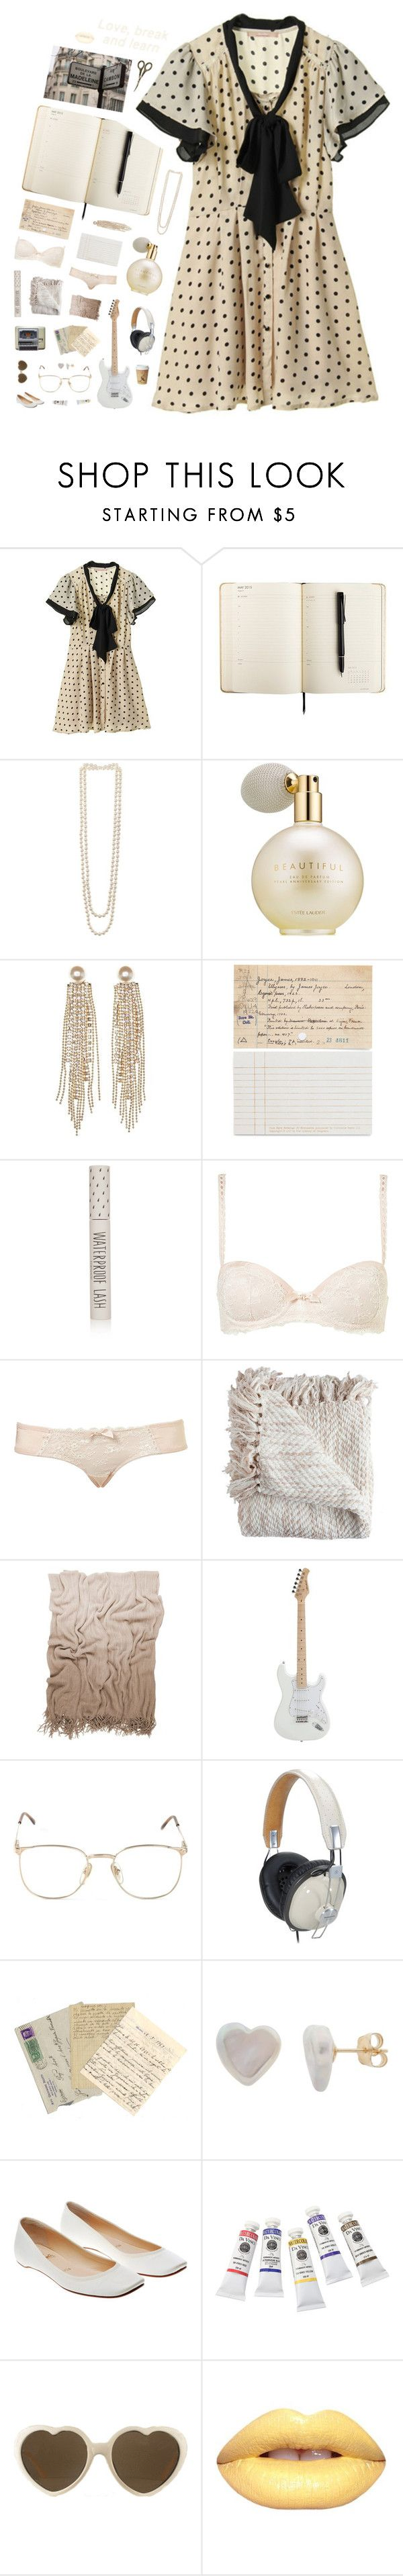 """""""725"""" by glitterals ❤ liked on Polyvore featuring Damsel in a Dress, Kenneth Jay Lane, Estée Lauder, Charlotte Russe, Chronicle Books, Topshop, Moltex, Persol, Panasonic and Cobra & Bellamy"""